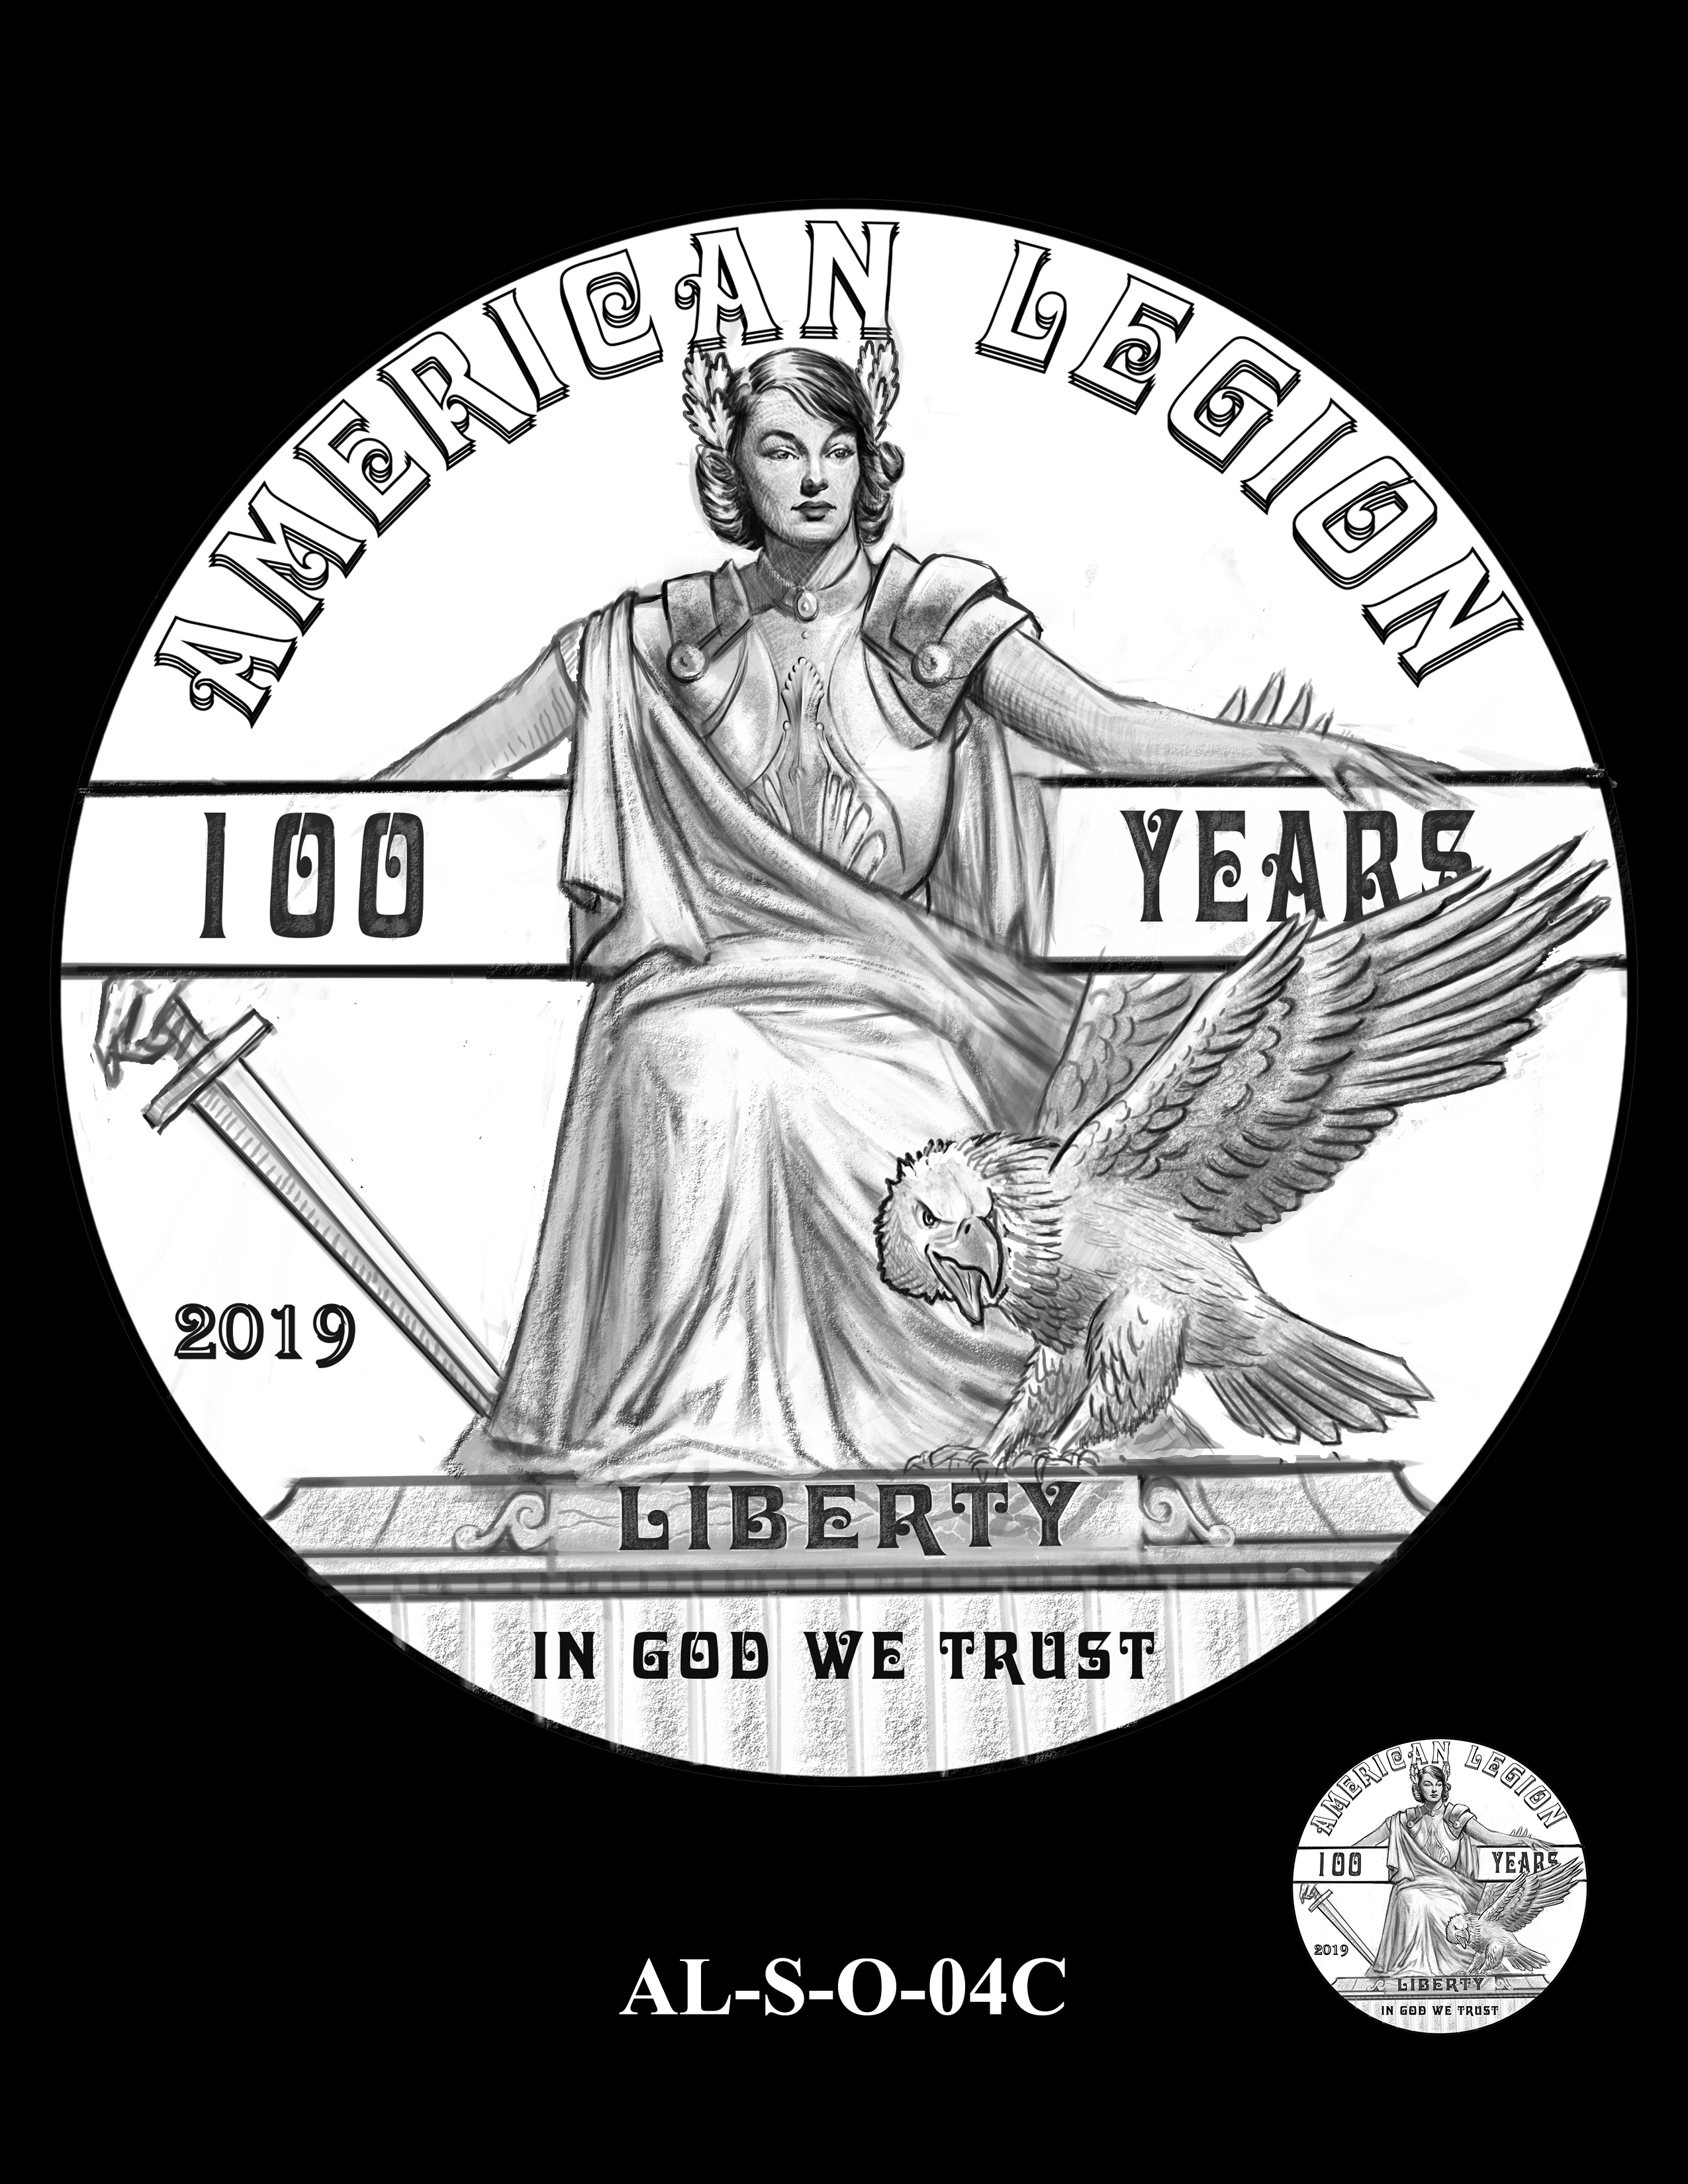 AL-S-O-04C -- 2019 American Legion 100th Anniversary Commemorative Coin Program - Silver Obverse